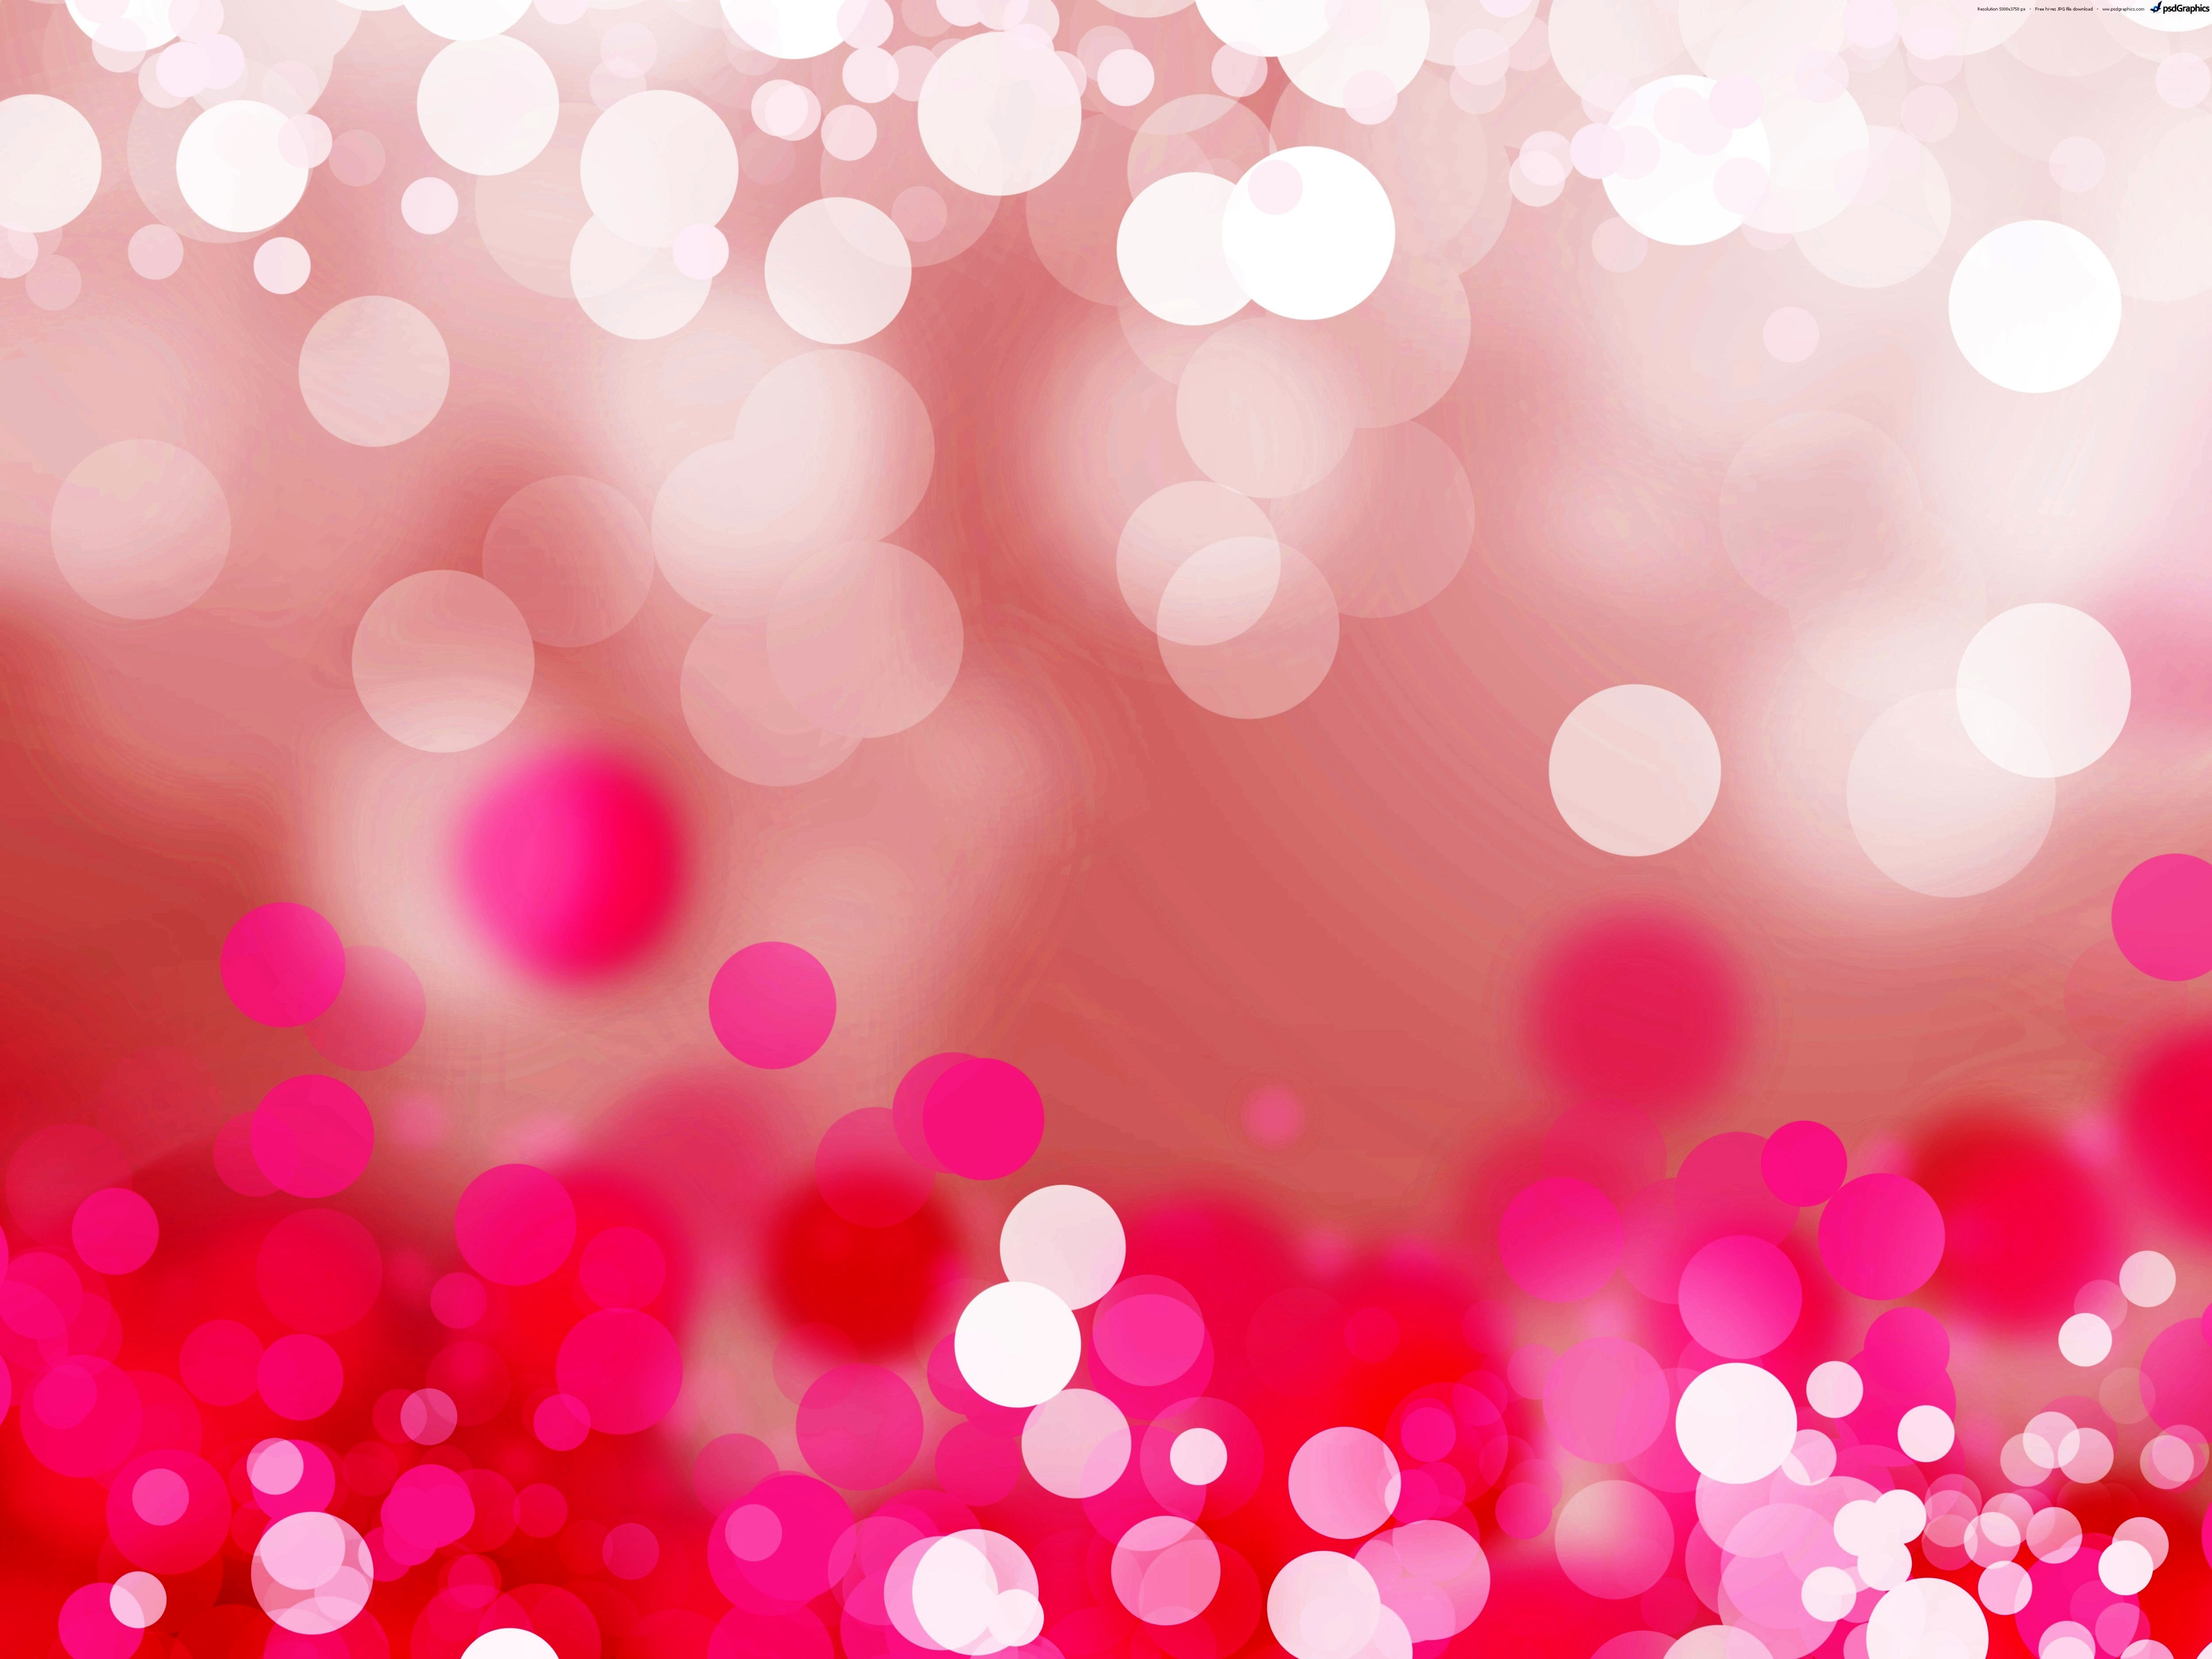 Cute Pink Wallpaper Collection For Download 6900x5175